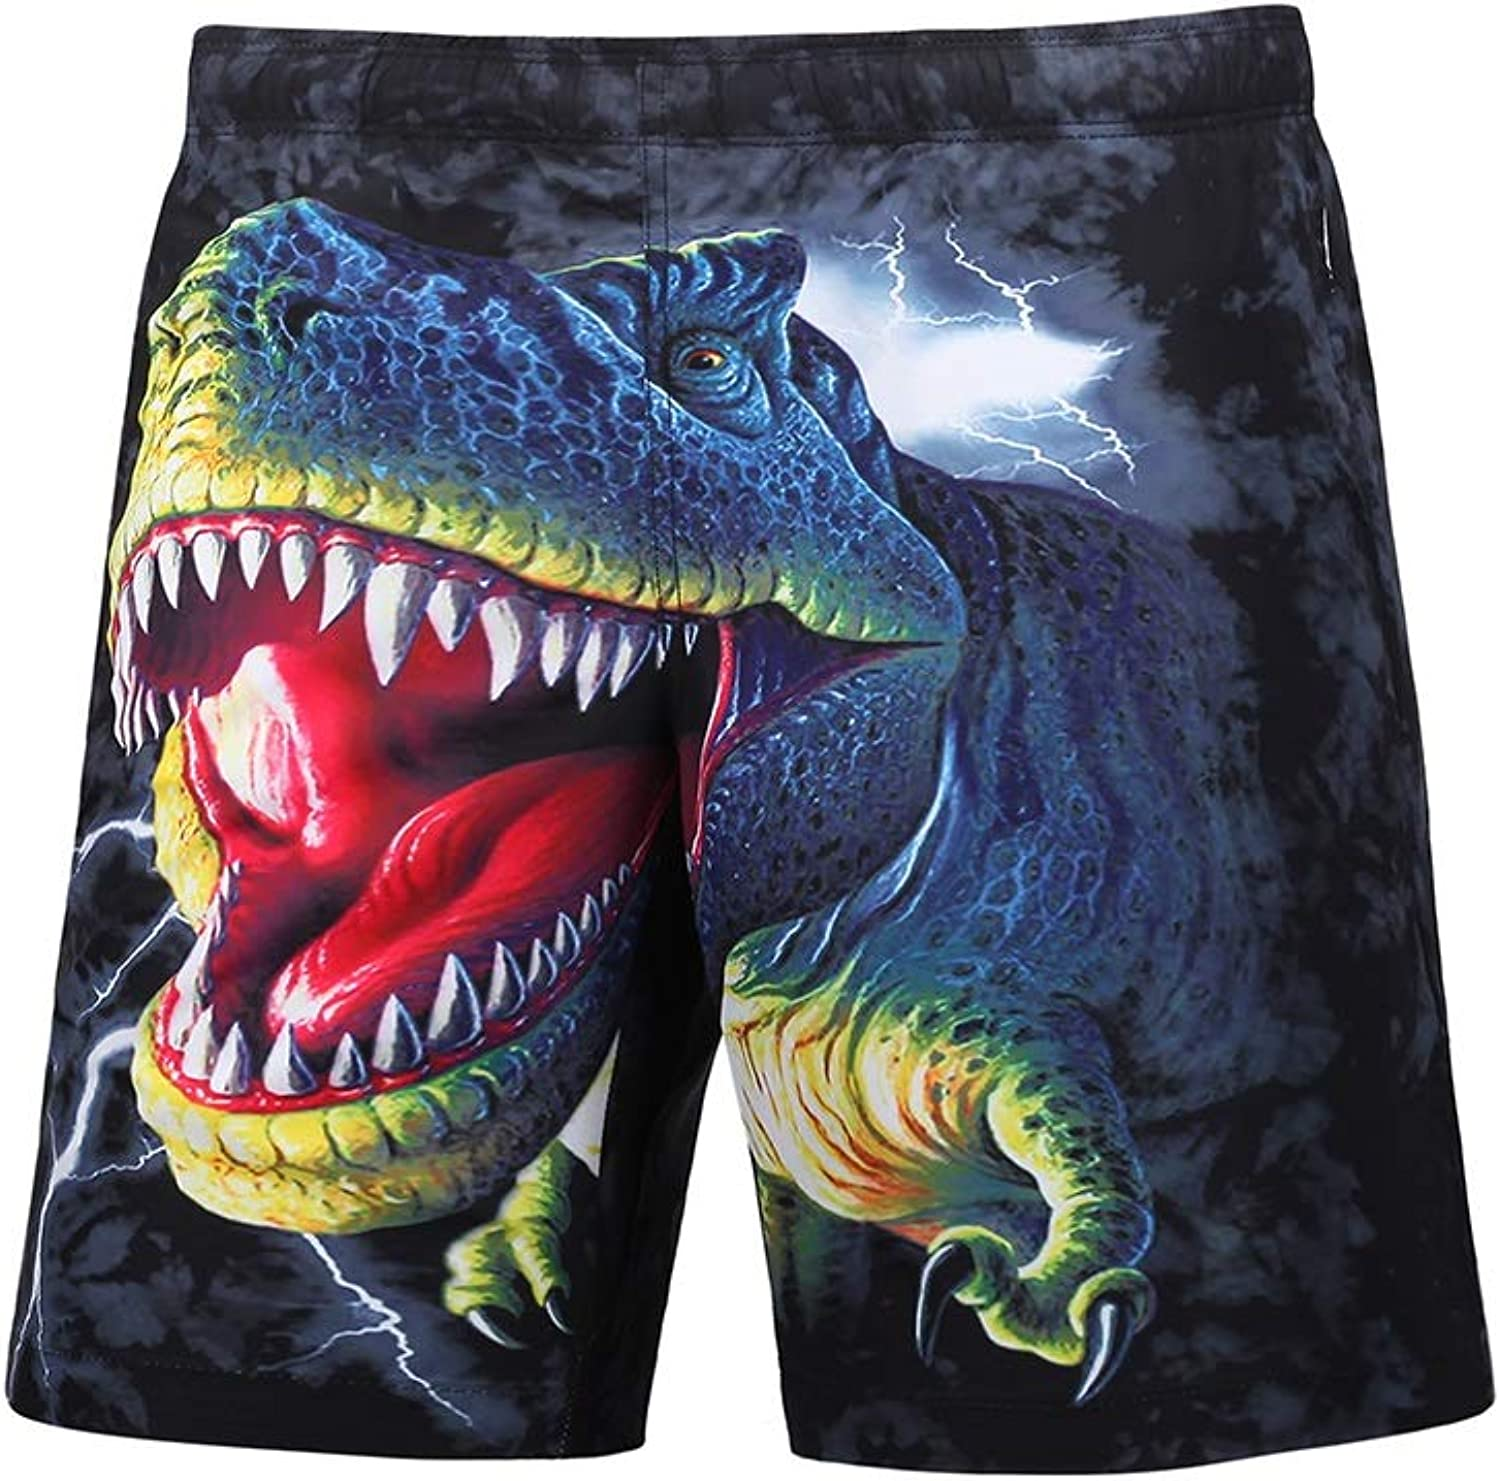 New Men's Summer Beach Shorts Dinosaur 3D Printed Trunks Beach Pants (color   Multi-colord, Size   XXL)